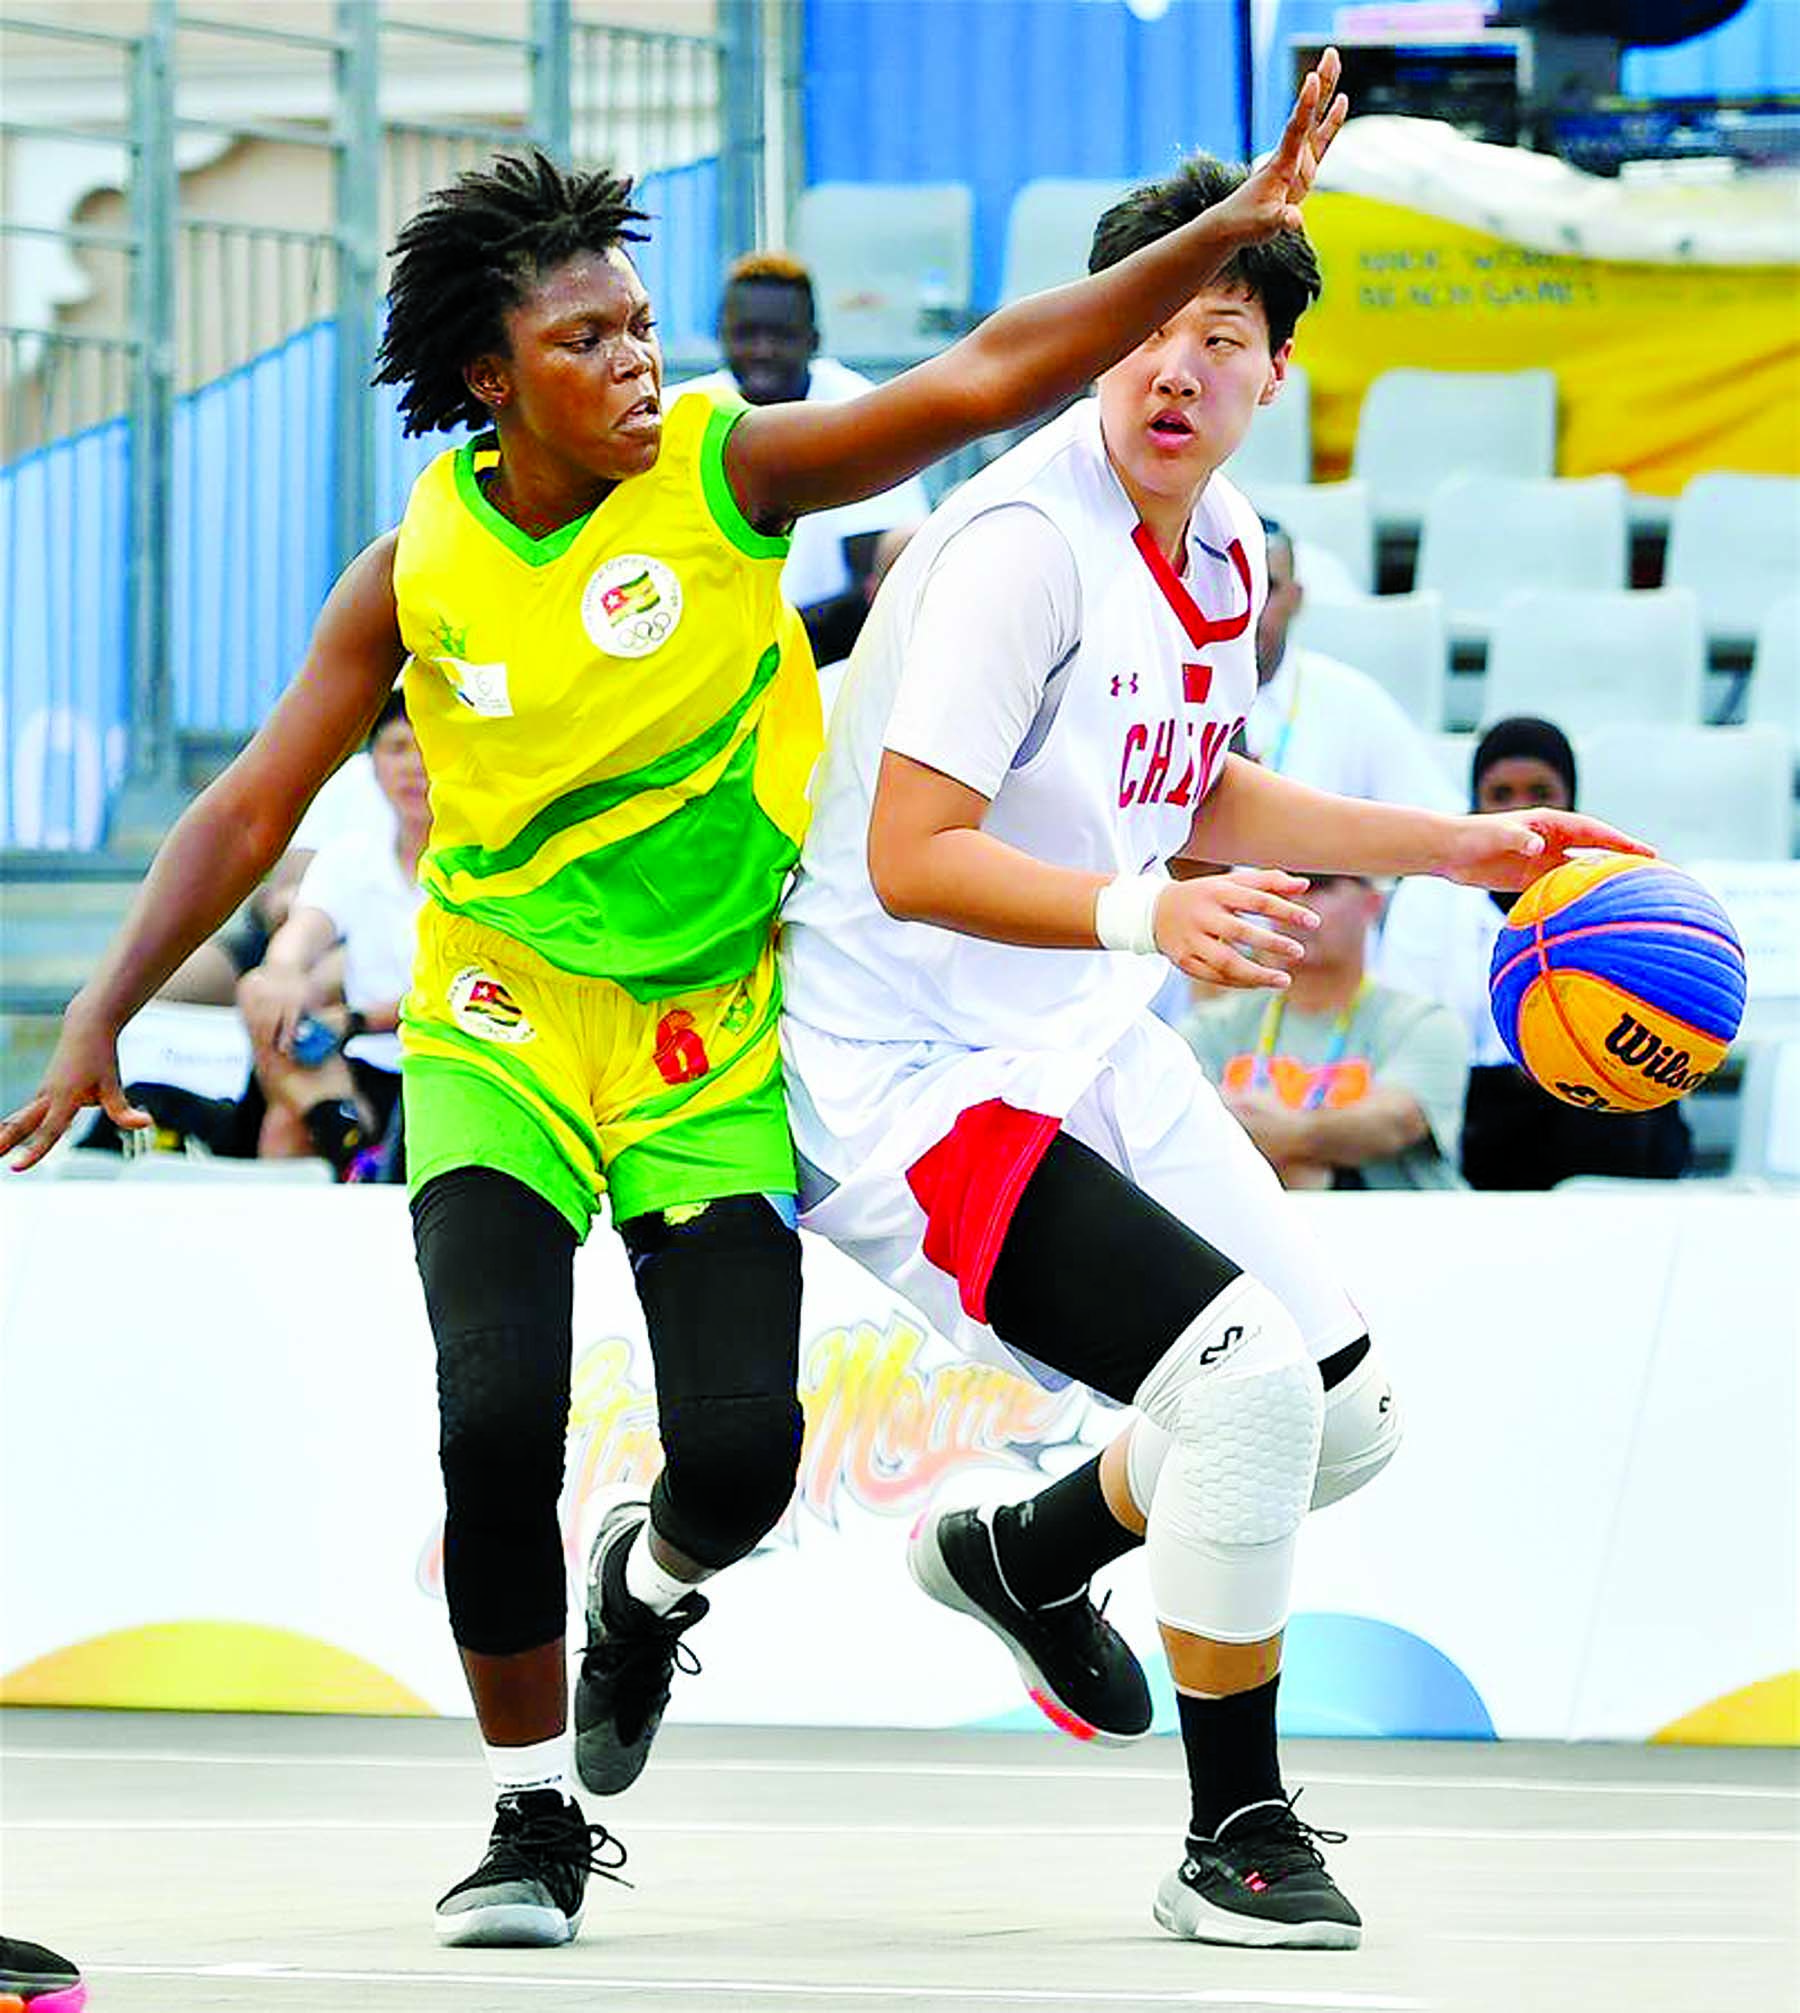 Ha Wenxi (right) of China, vies with Pierrette Adjovi Donouvi of Togo, during the 3x3 women's Team Group B match between China and Togo at the 1st ANOC World Beach Games Qatar 2019 in Doha, capital of Qatar on Monday.